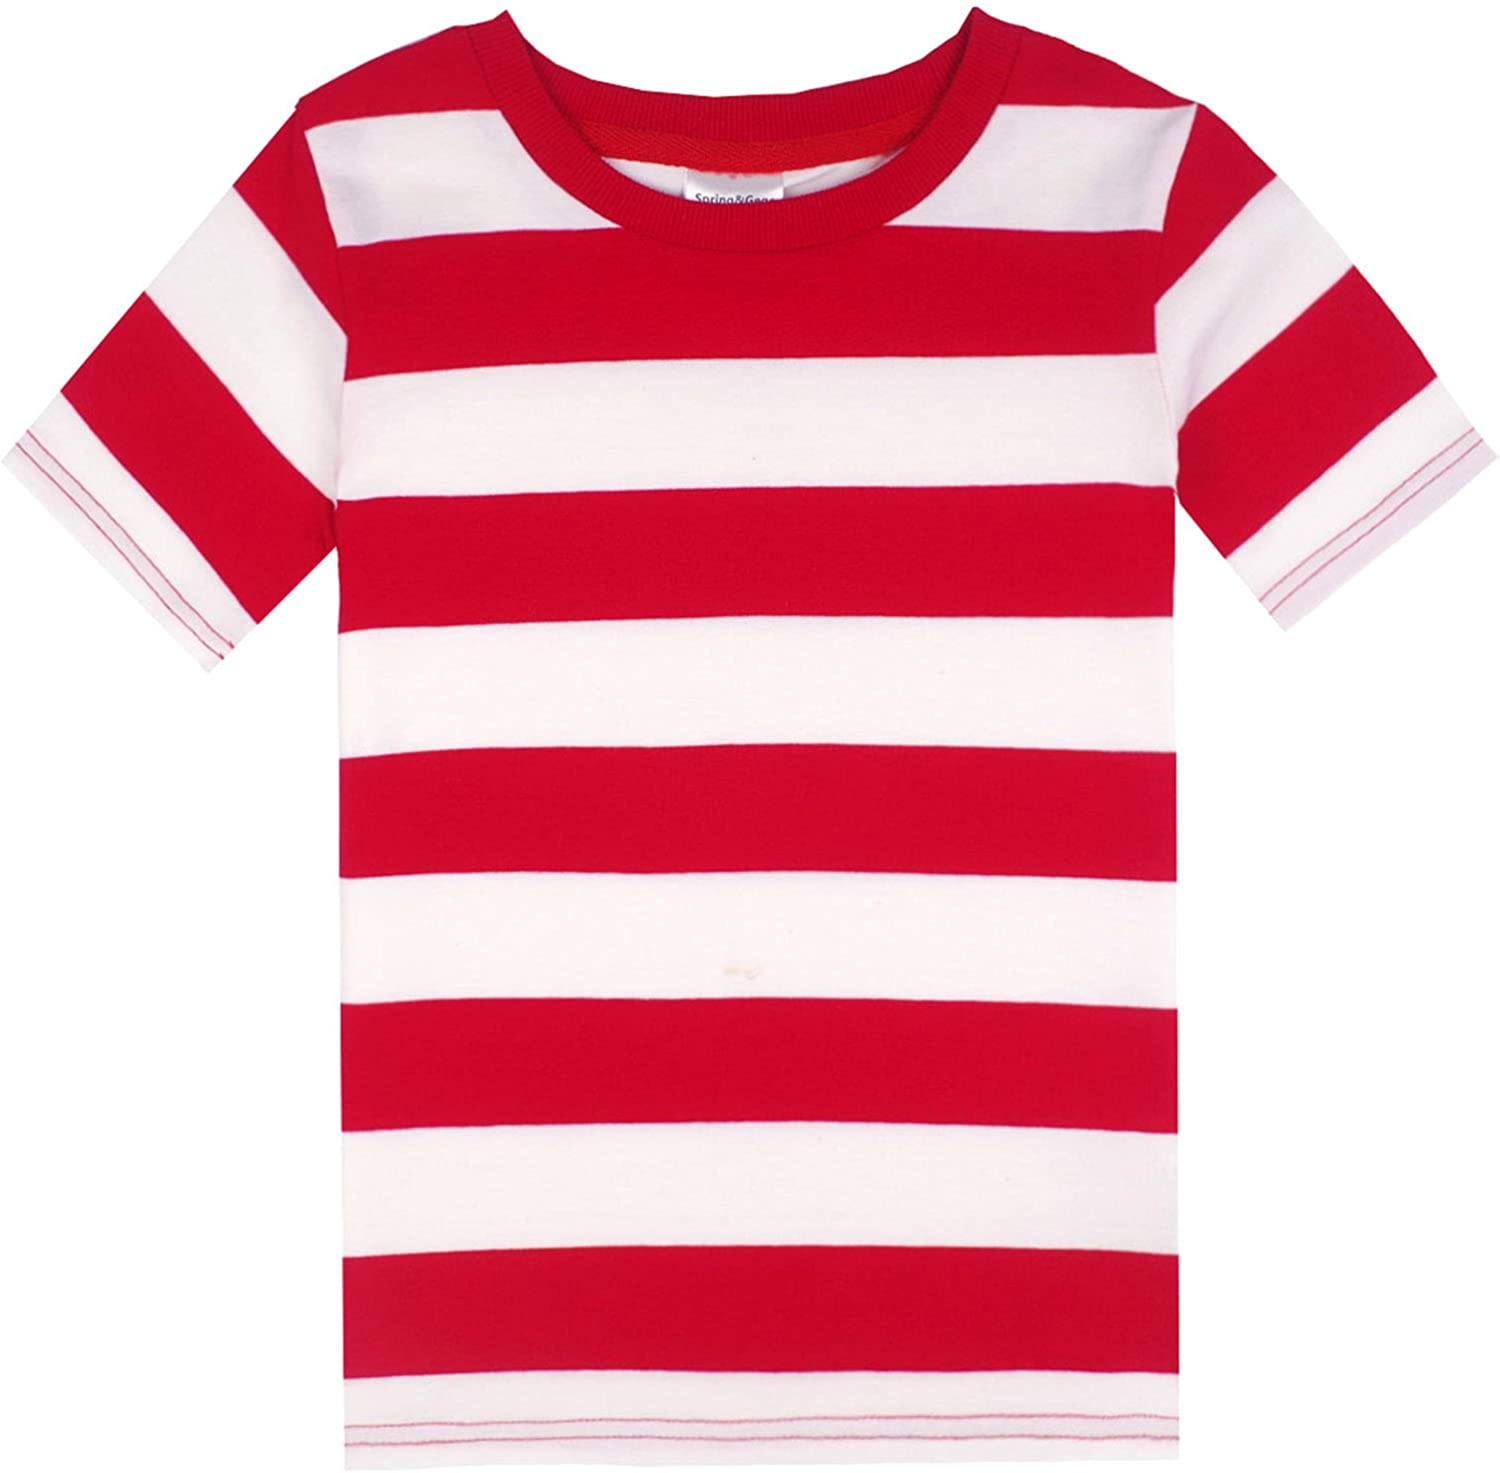 Spring/&Gege Boys Cotton Short Sleeve Striped Crew Neck T-Shirt